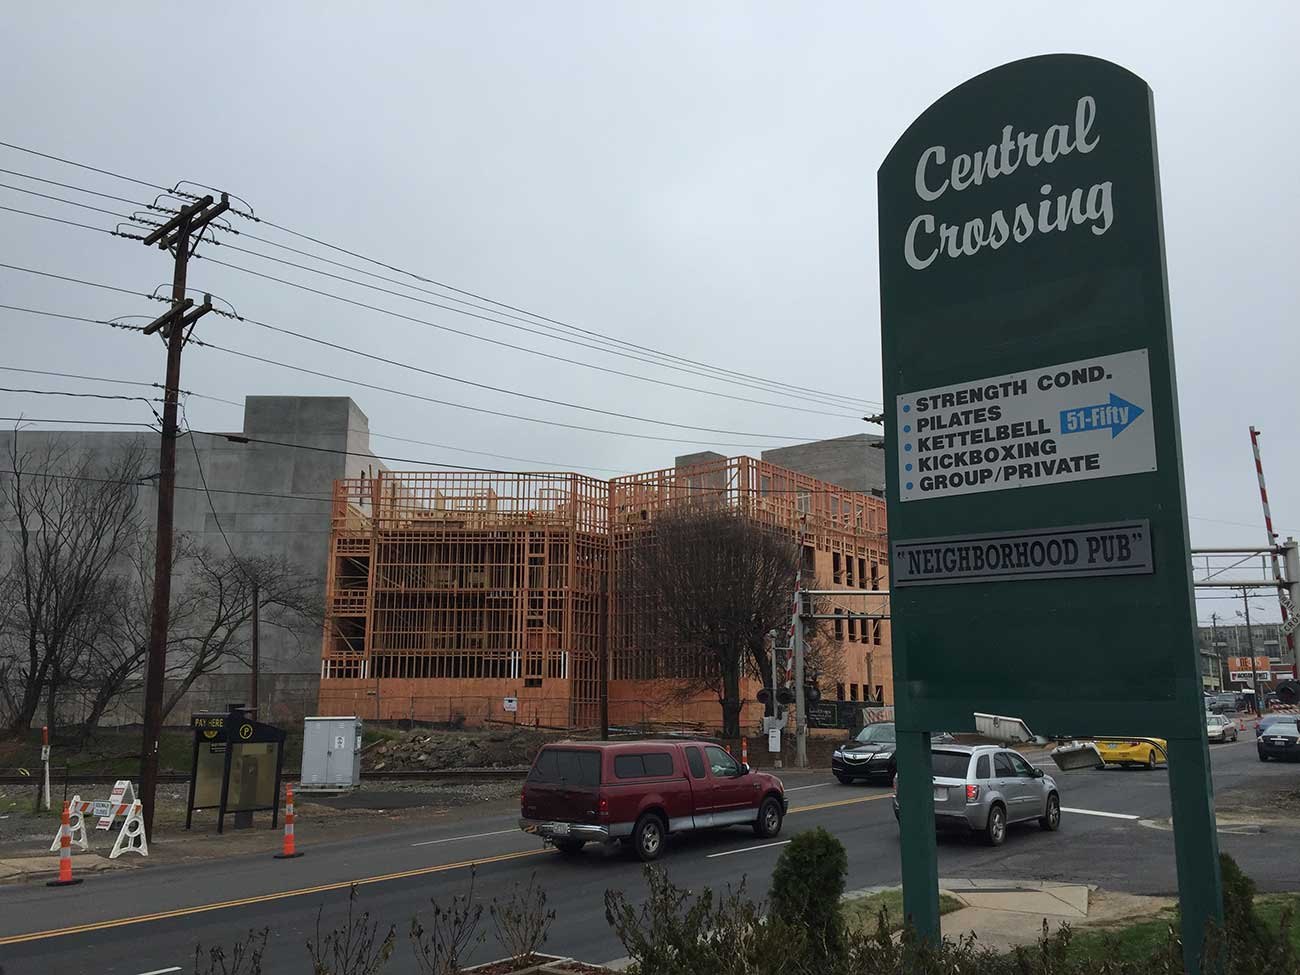 Central Crossing wants to serve the million apartments being built around it